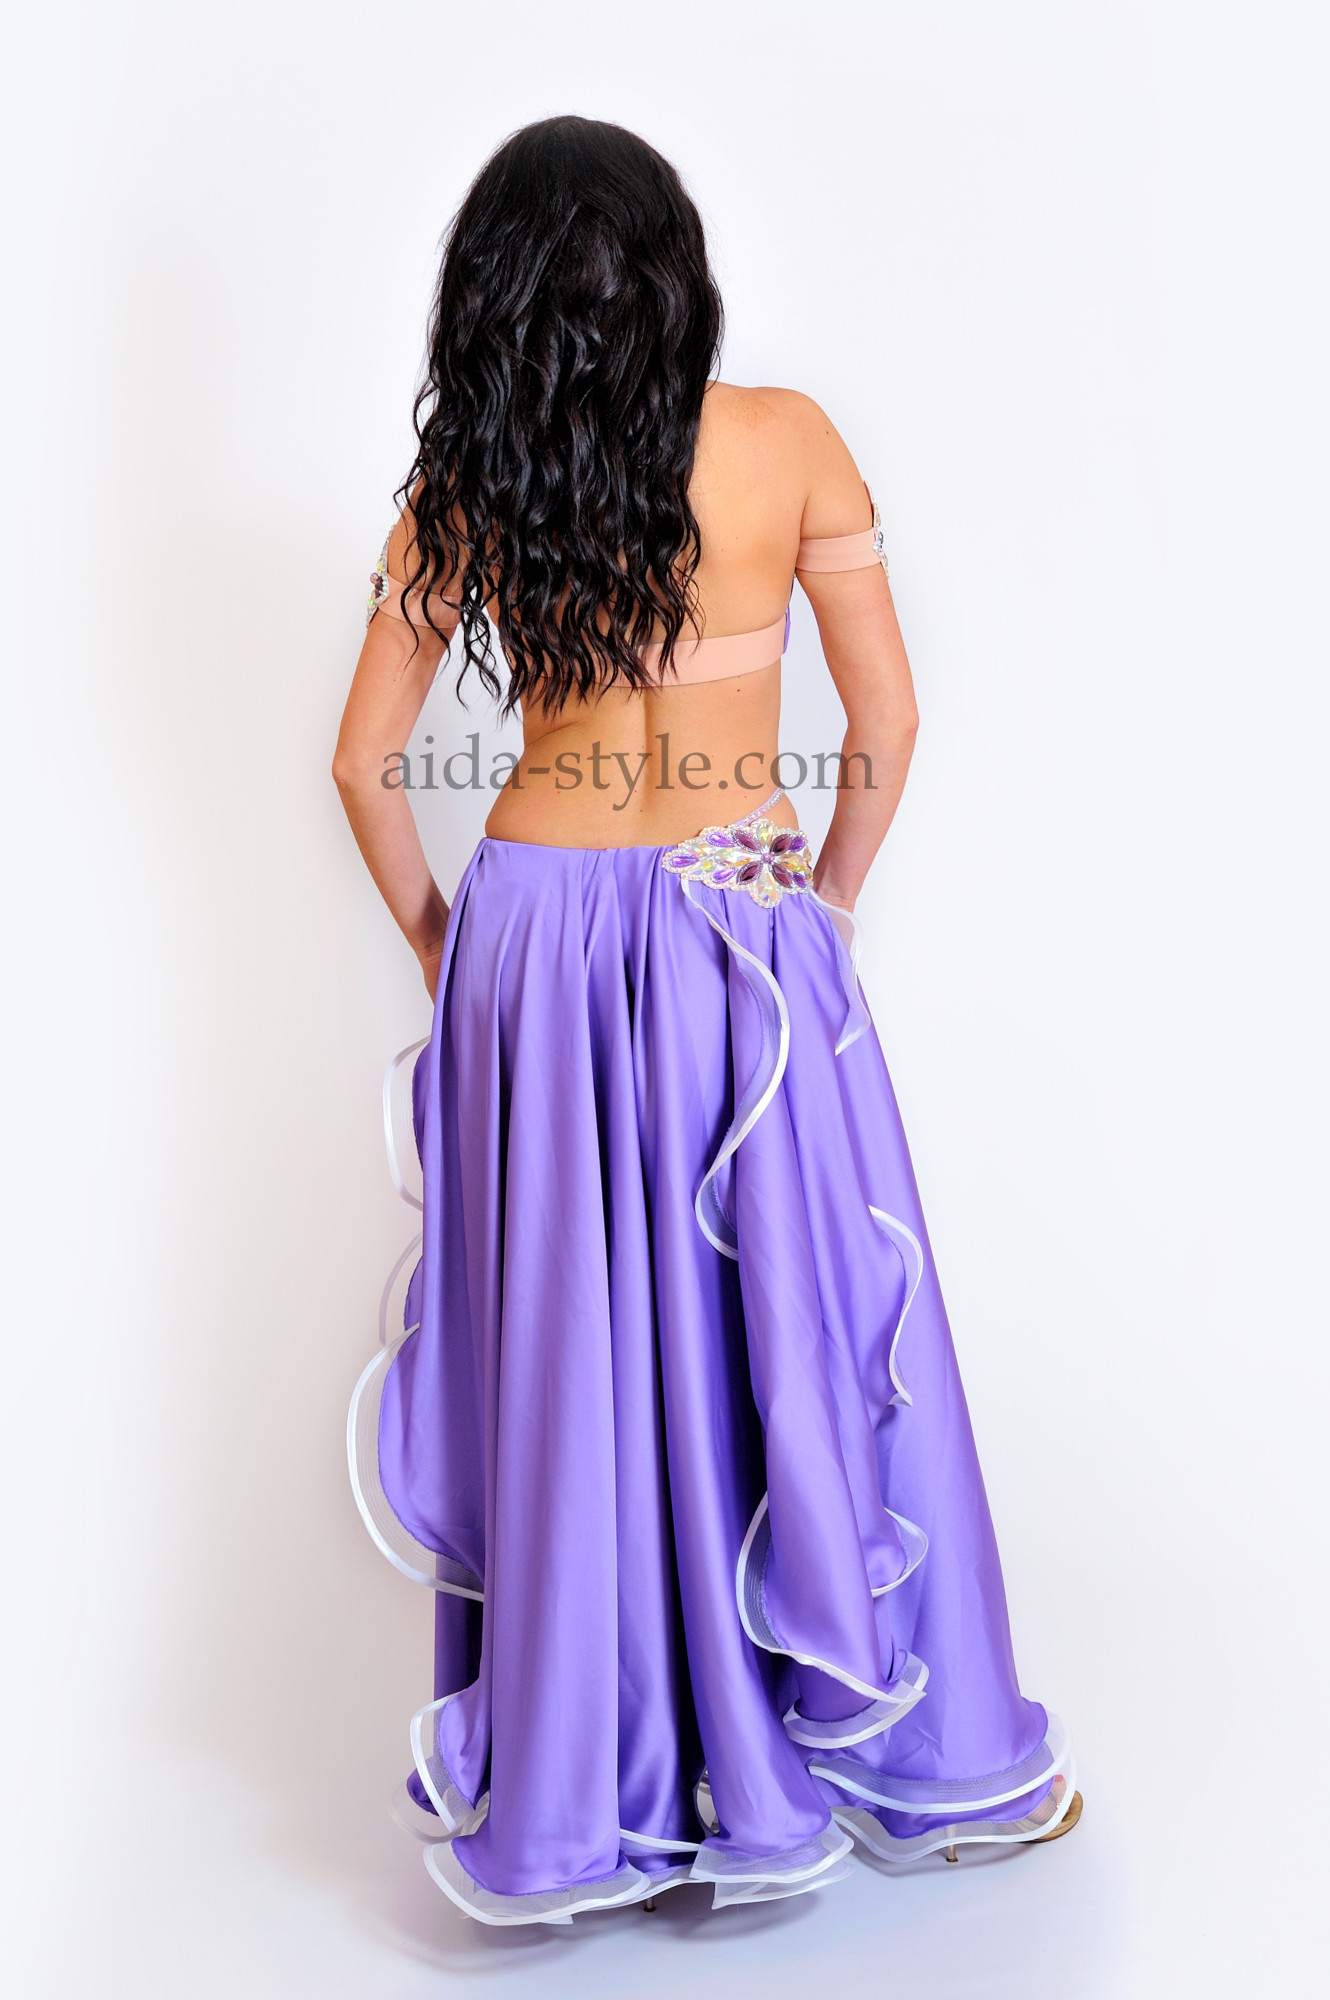 Bright lilac professional belly dance costume with flowers from stones on the right hip and on the bra